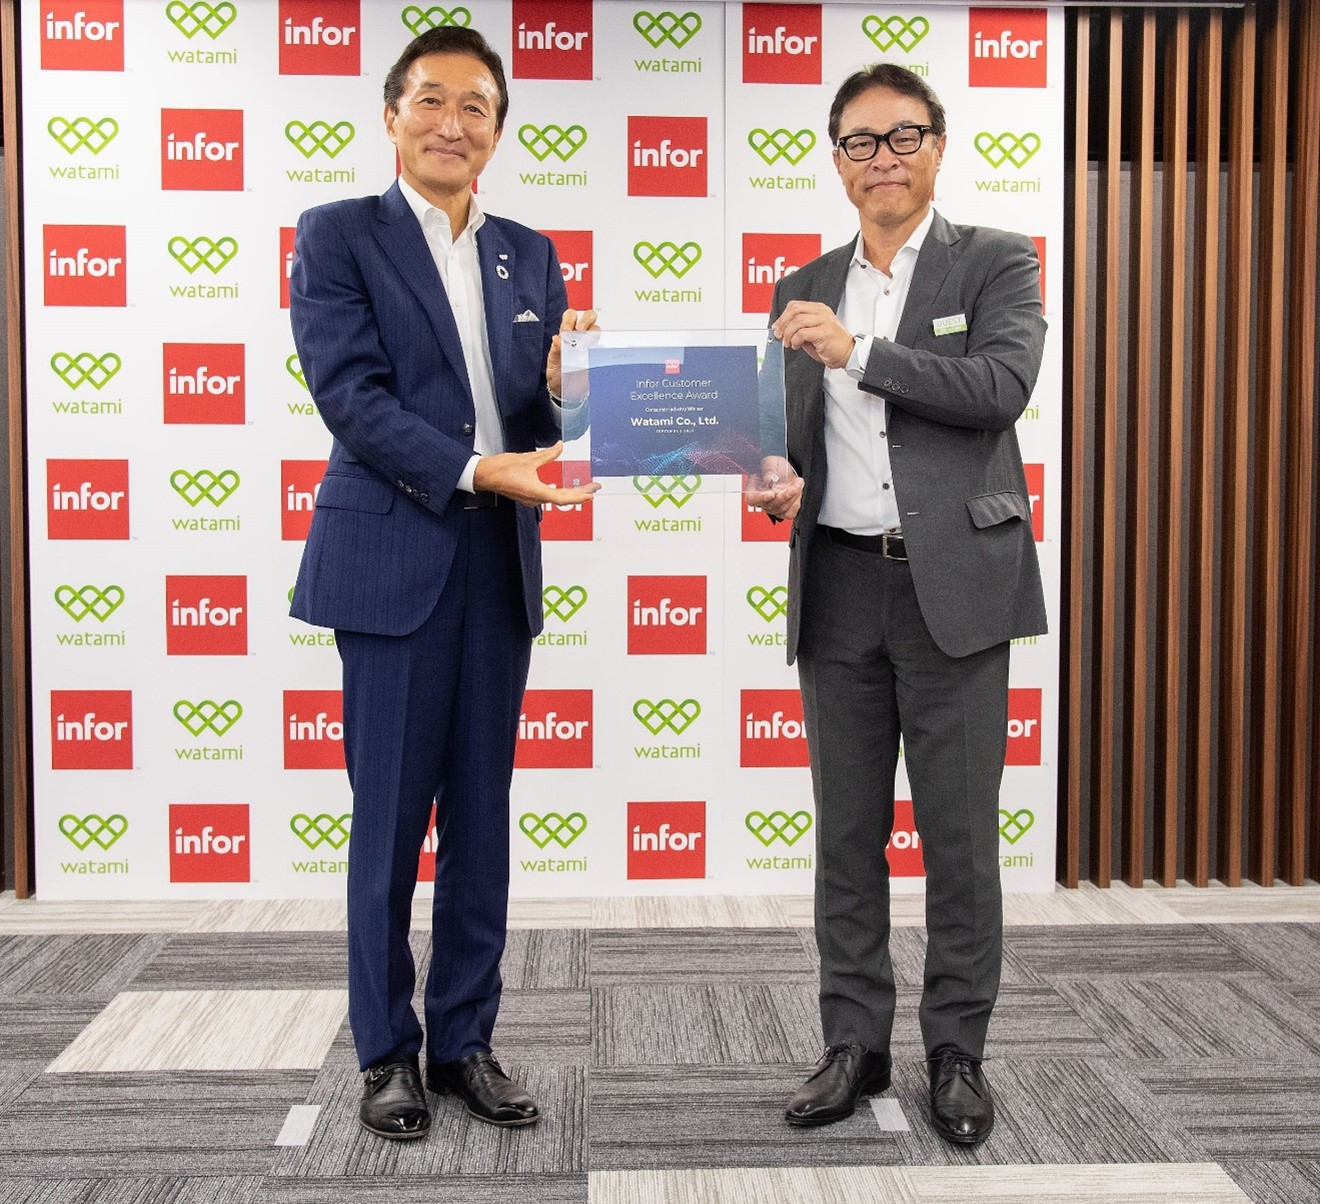 Watami Receives Infor Customer Excellence Award 2020 for Exceptional Use of Cloud Technology